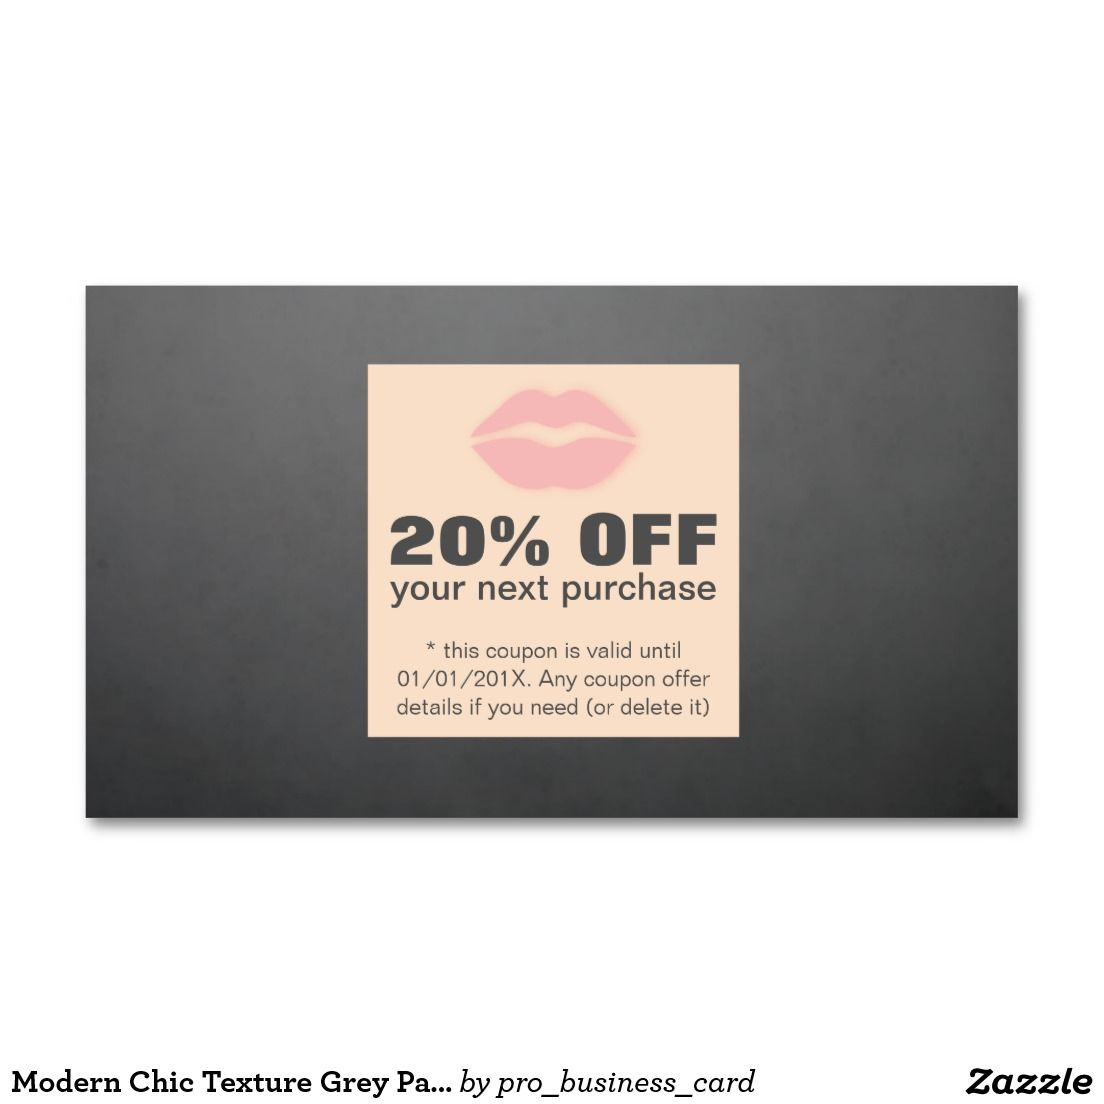 Modern Chic Texture Grey Pale Pink Coupon Makeup | Loyalty Cards ...